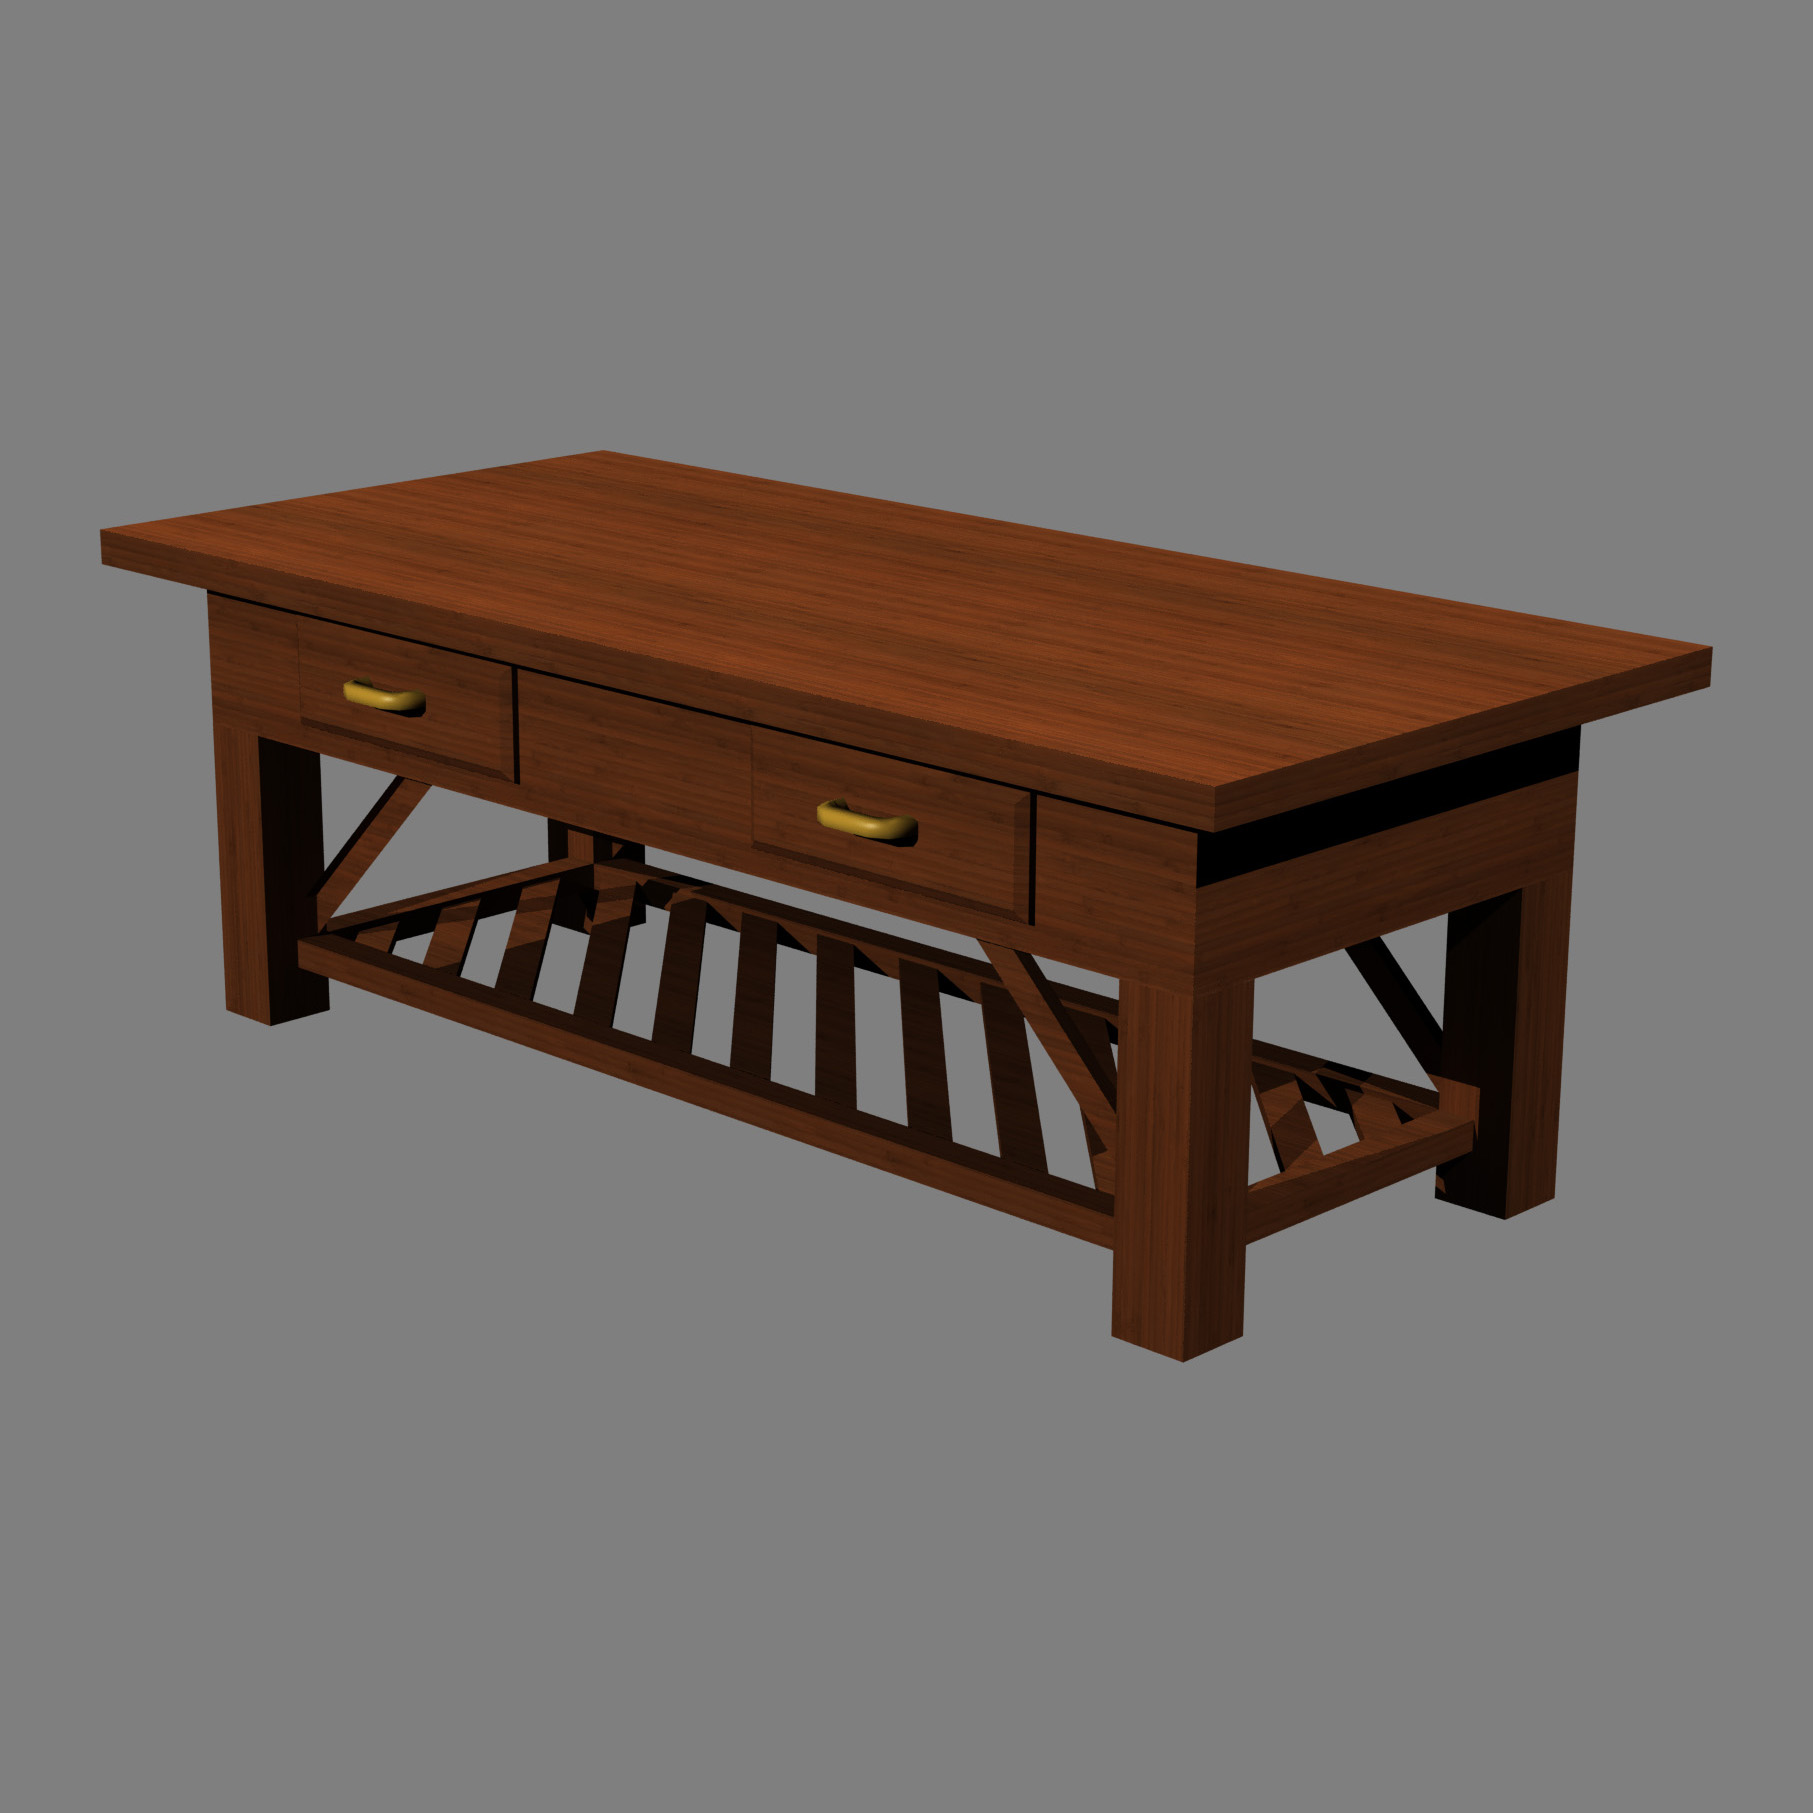 coffee table v2 3d model max fbx obj 271485